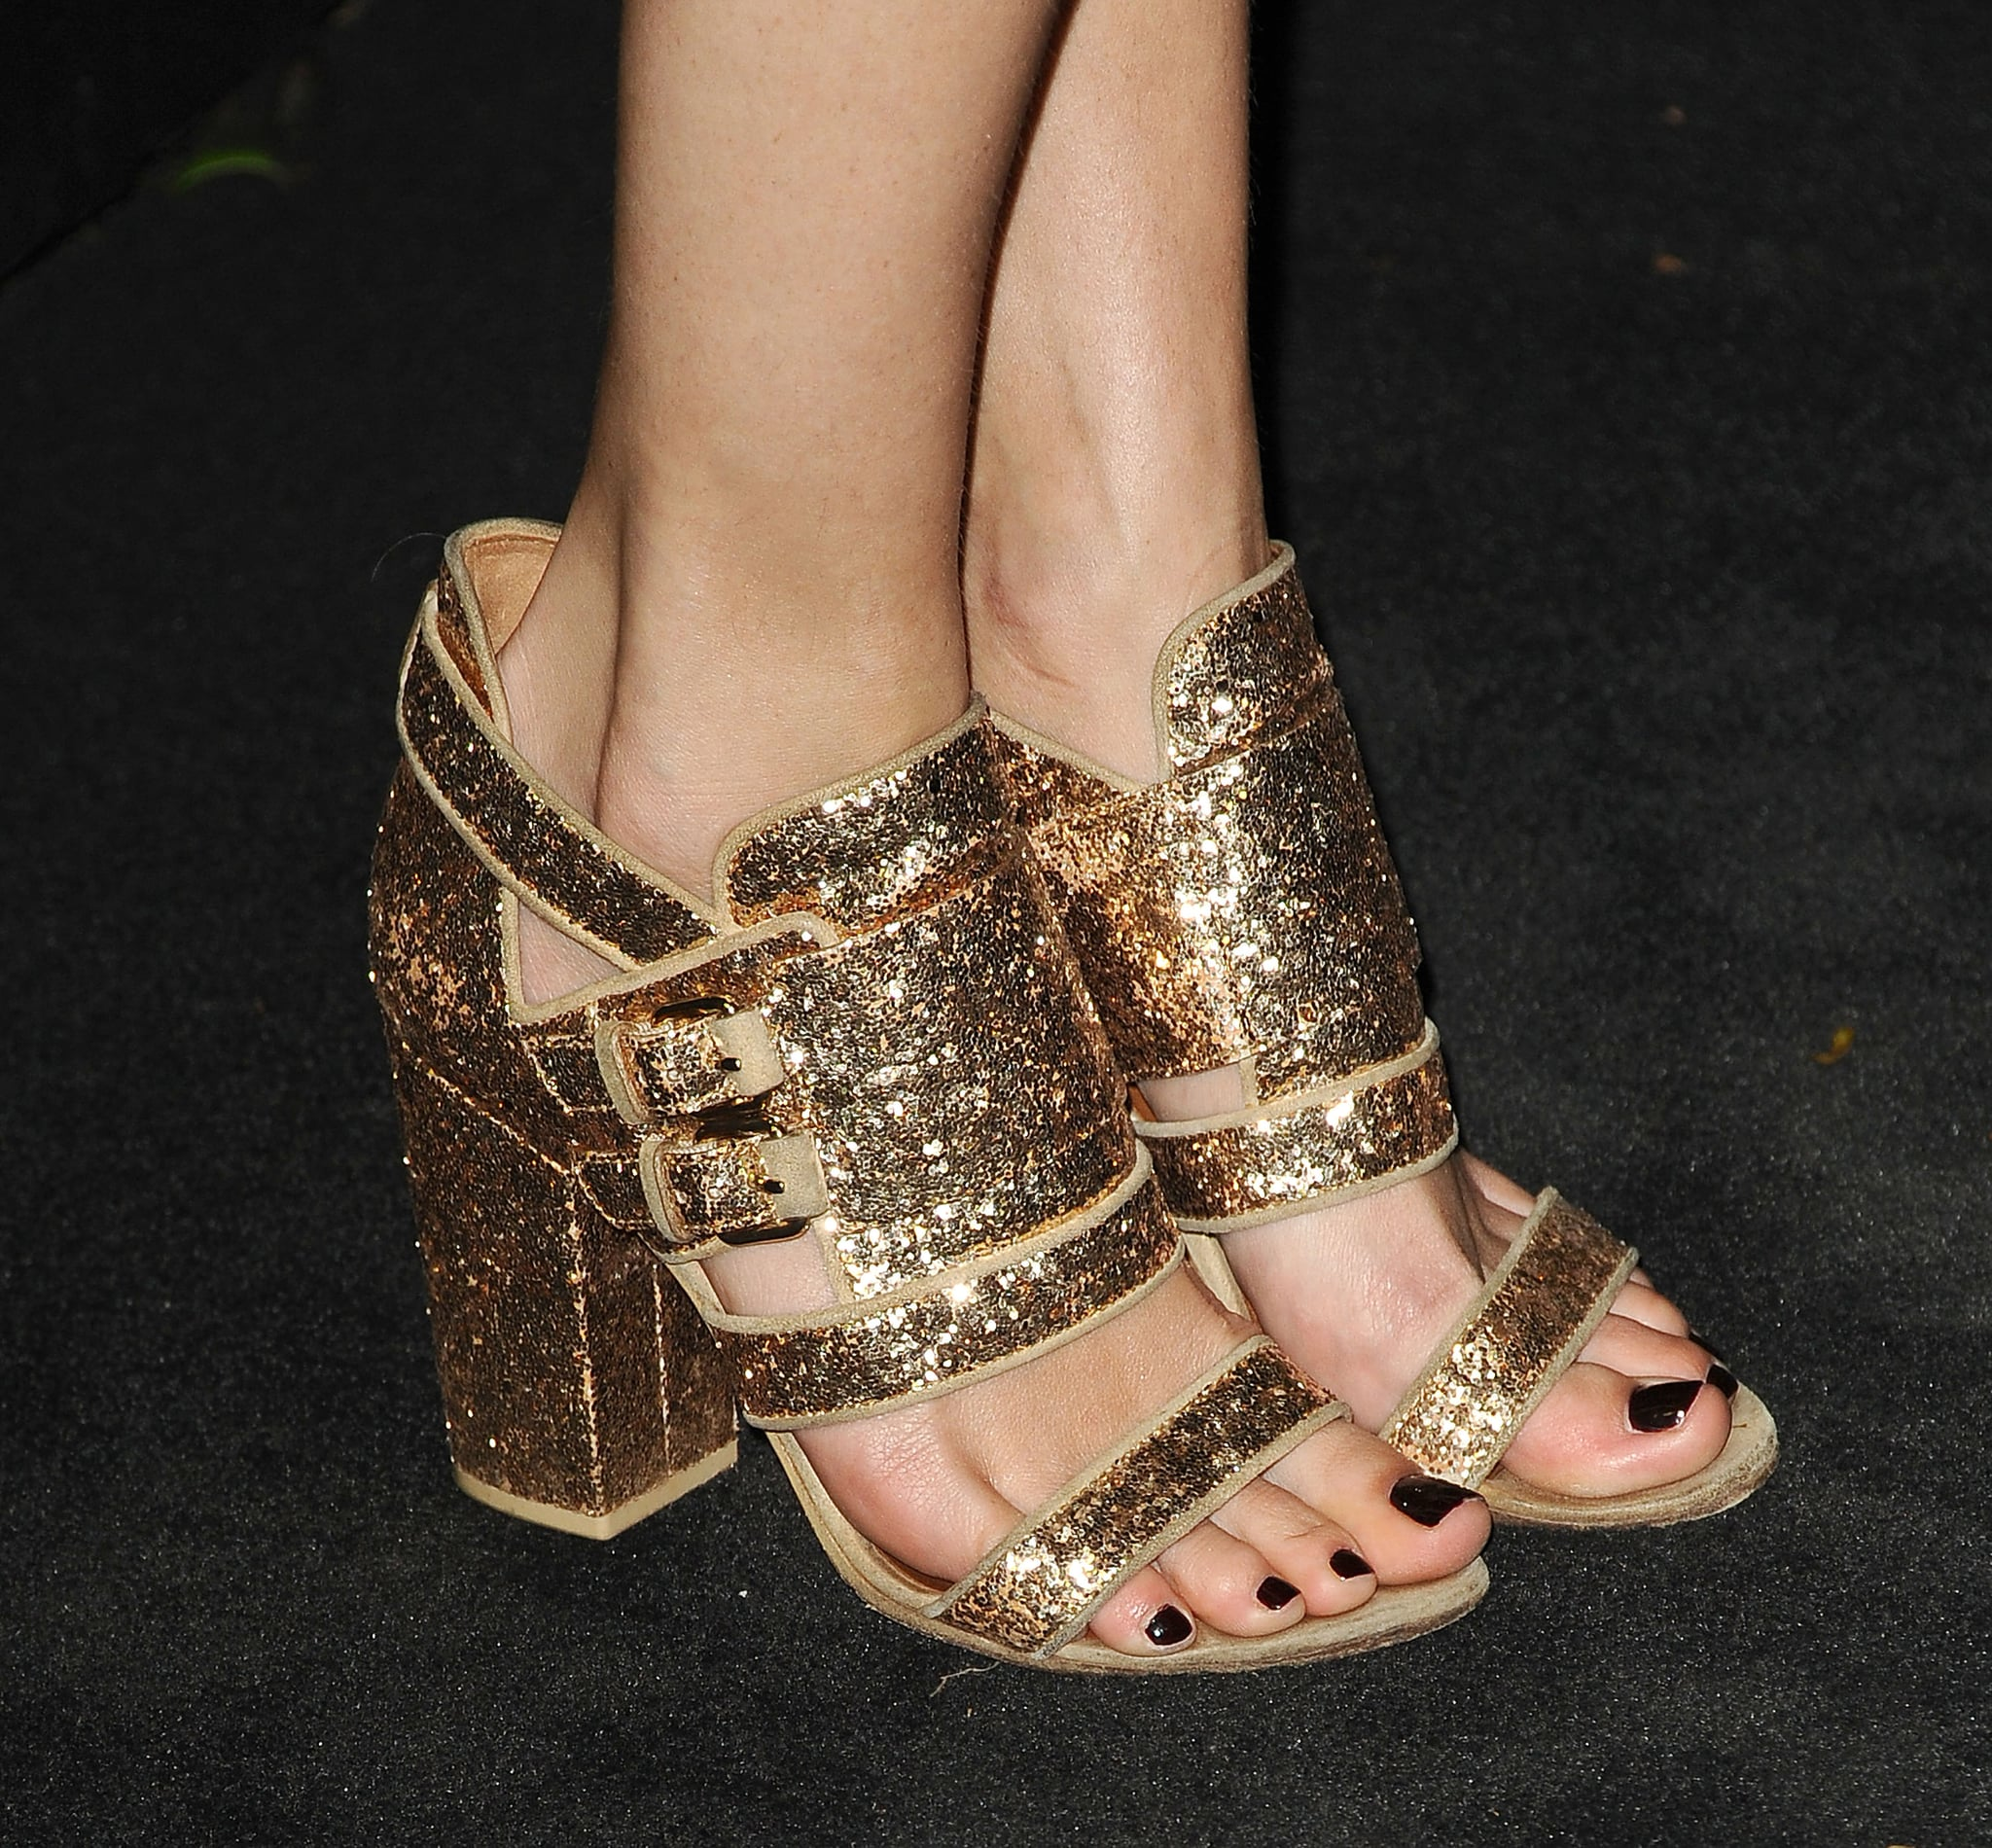 It was all about the glittery gold sandals for Poppy Delevingne's Chanel look.